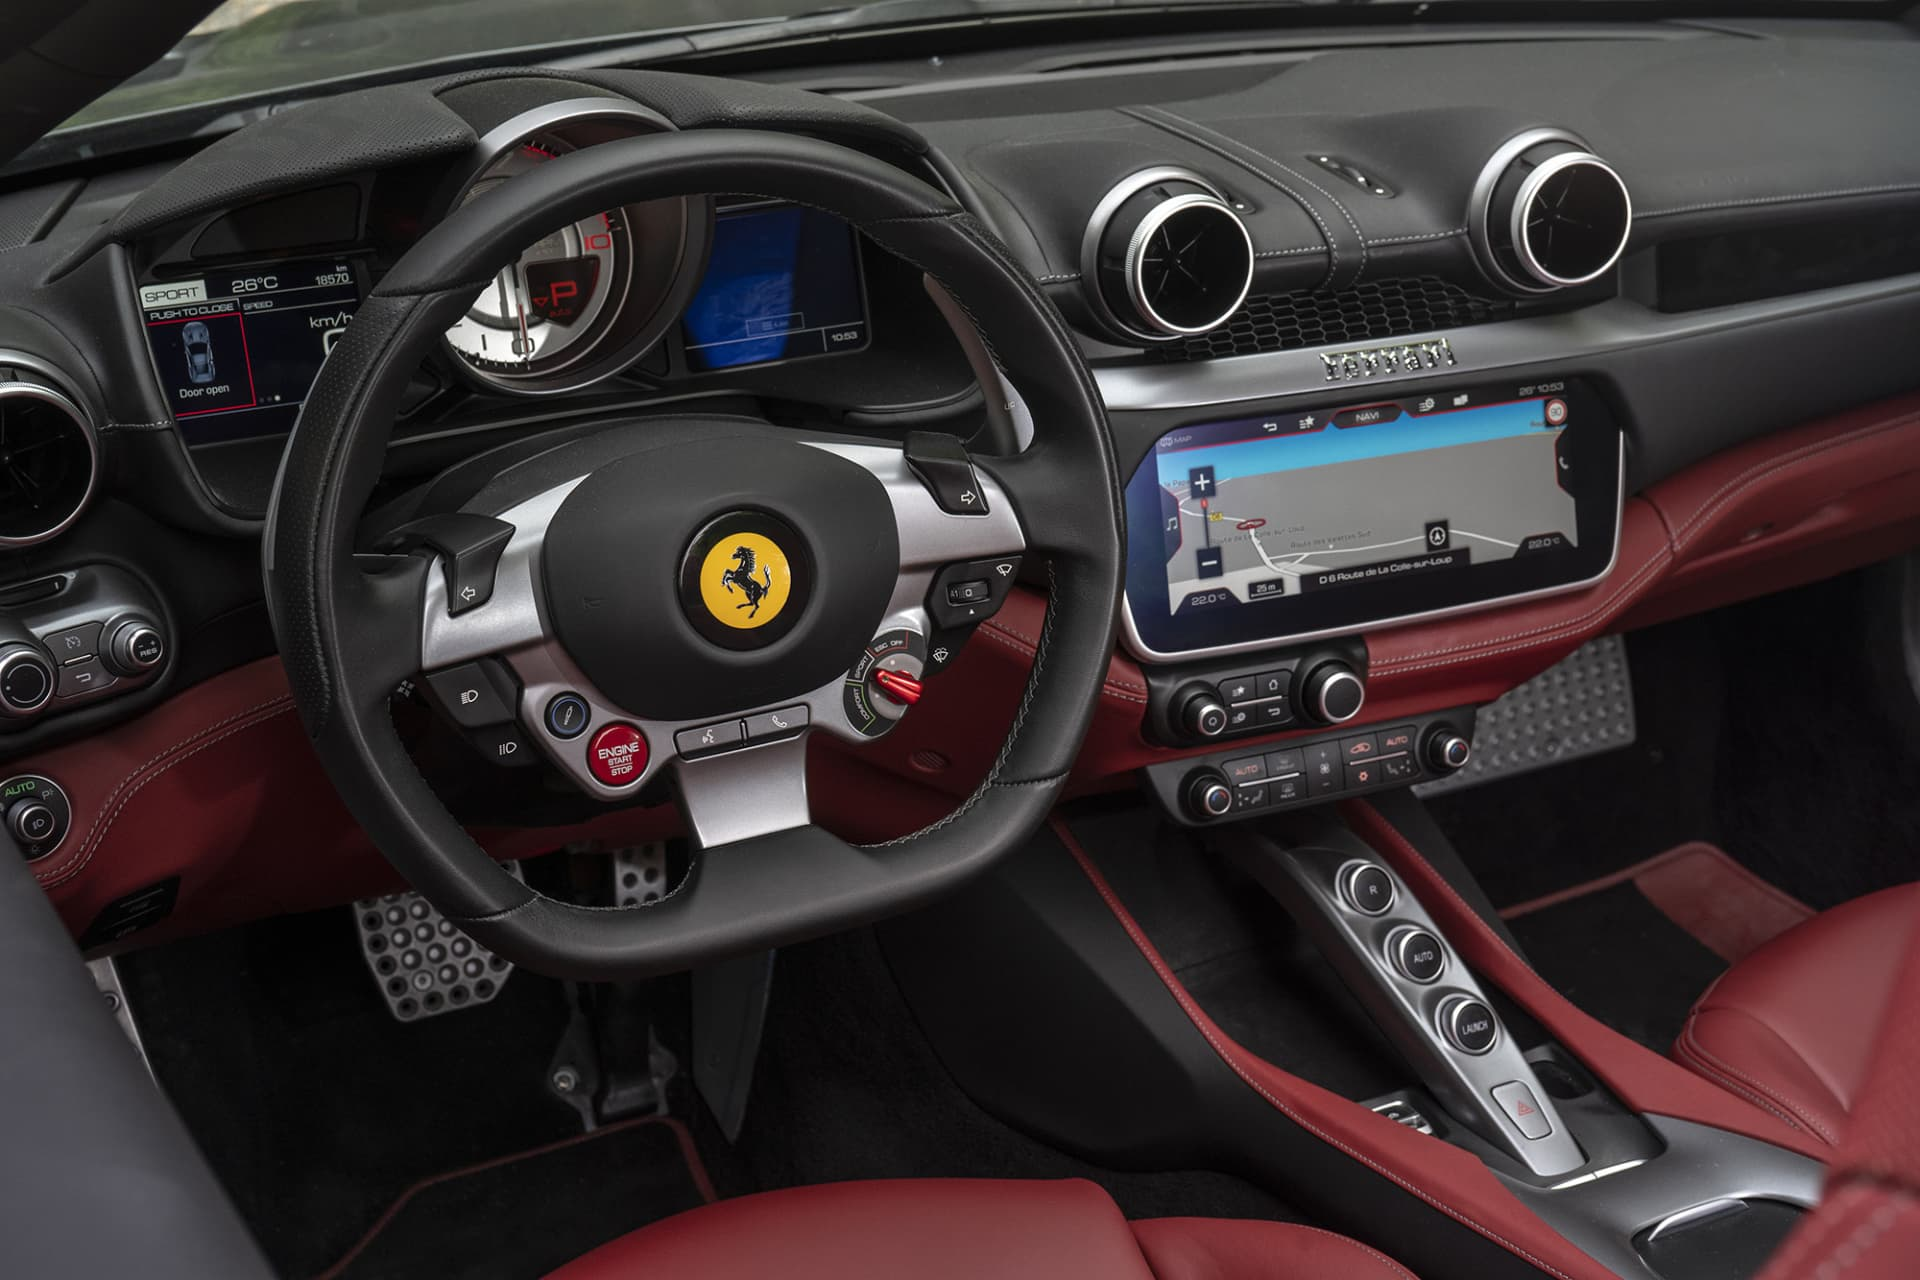 The interior of Portofino is like other Ferrari models very driver oriented. Behind the steering wheel there are no levers with the exception of the padles. All controls normally located there is controlled from the steering wheel.